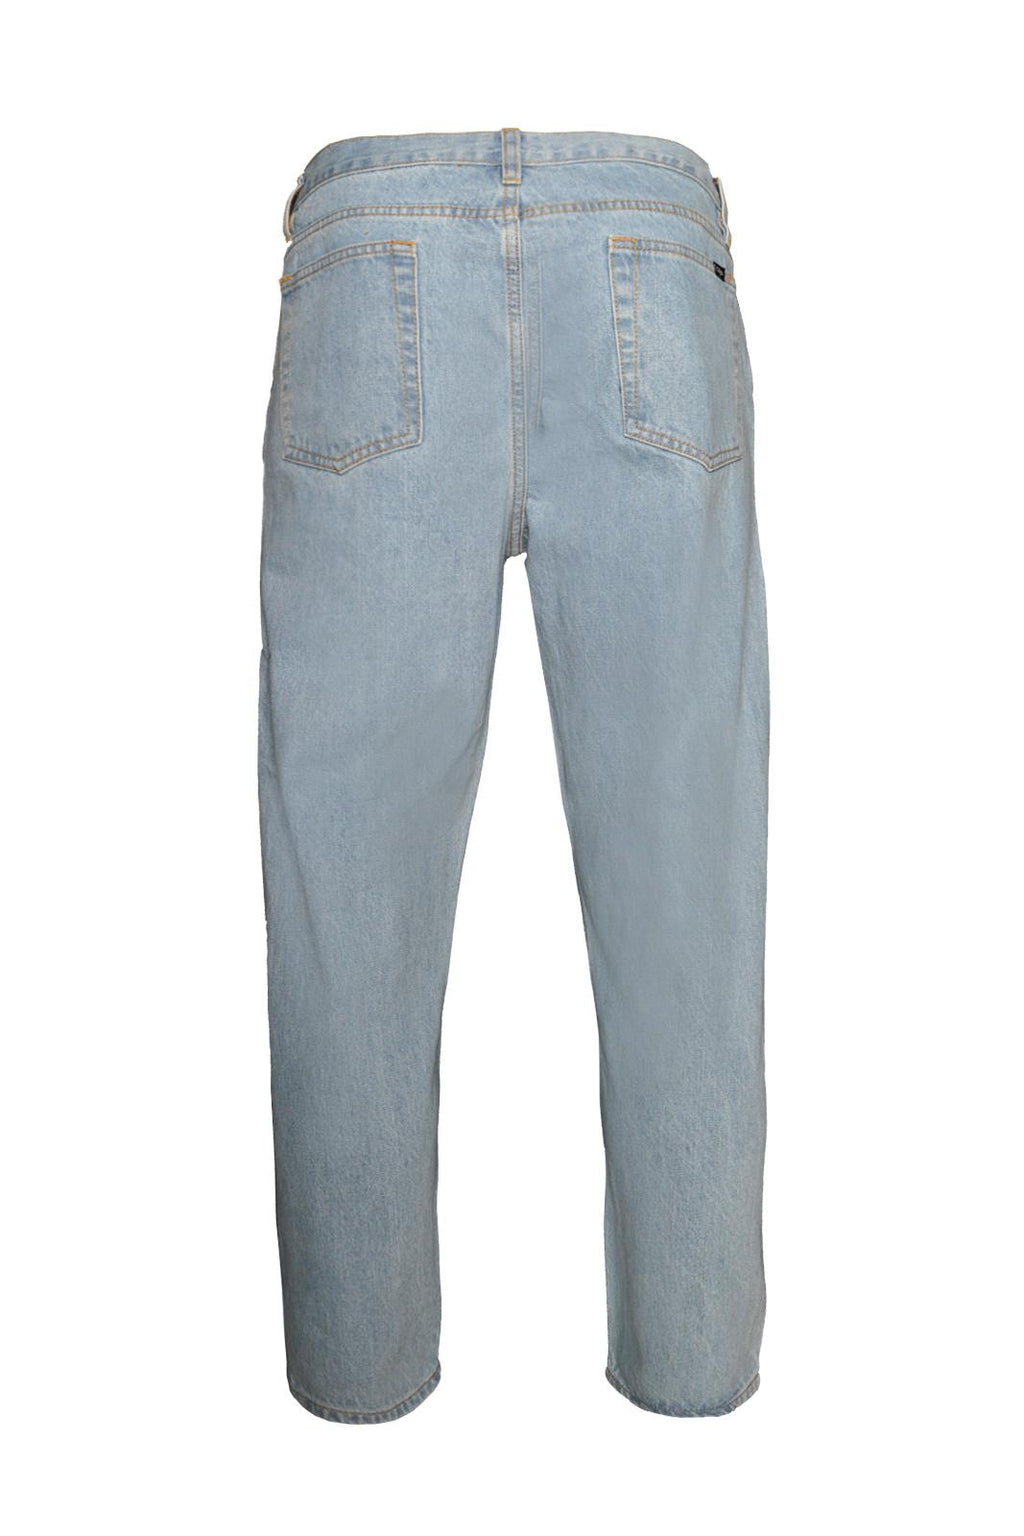 OBEY Bender 90's Denim Light Indigo